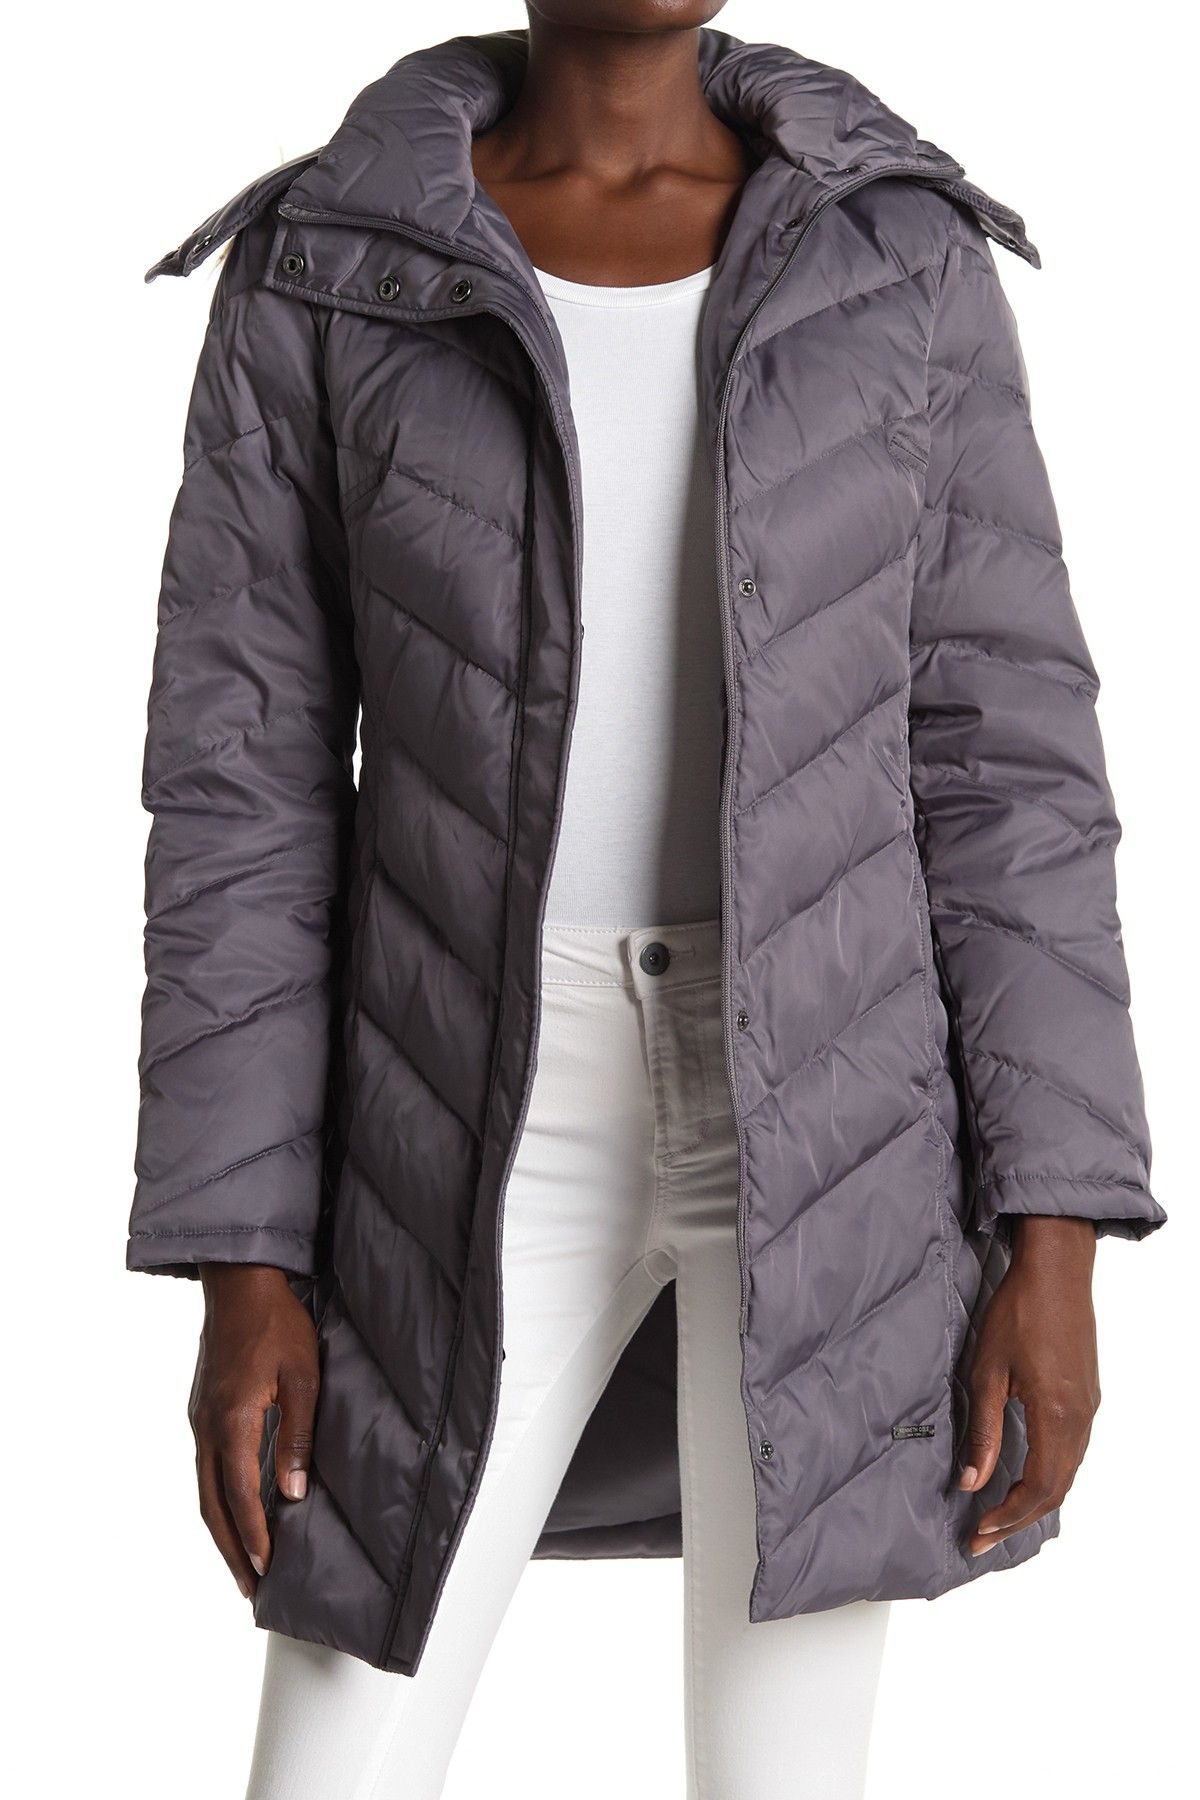 Kenneth Cole New York Faux Fur Trimmed Removable Hood Quilted Down Puffer Jacket Nordstrom Rack Kenneth Cole New York Winter Puffer Coat Puffer Jackets [ 1800 x 1200 Pixel ]